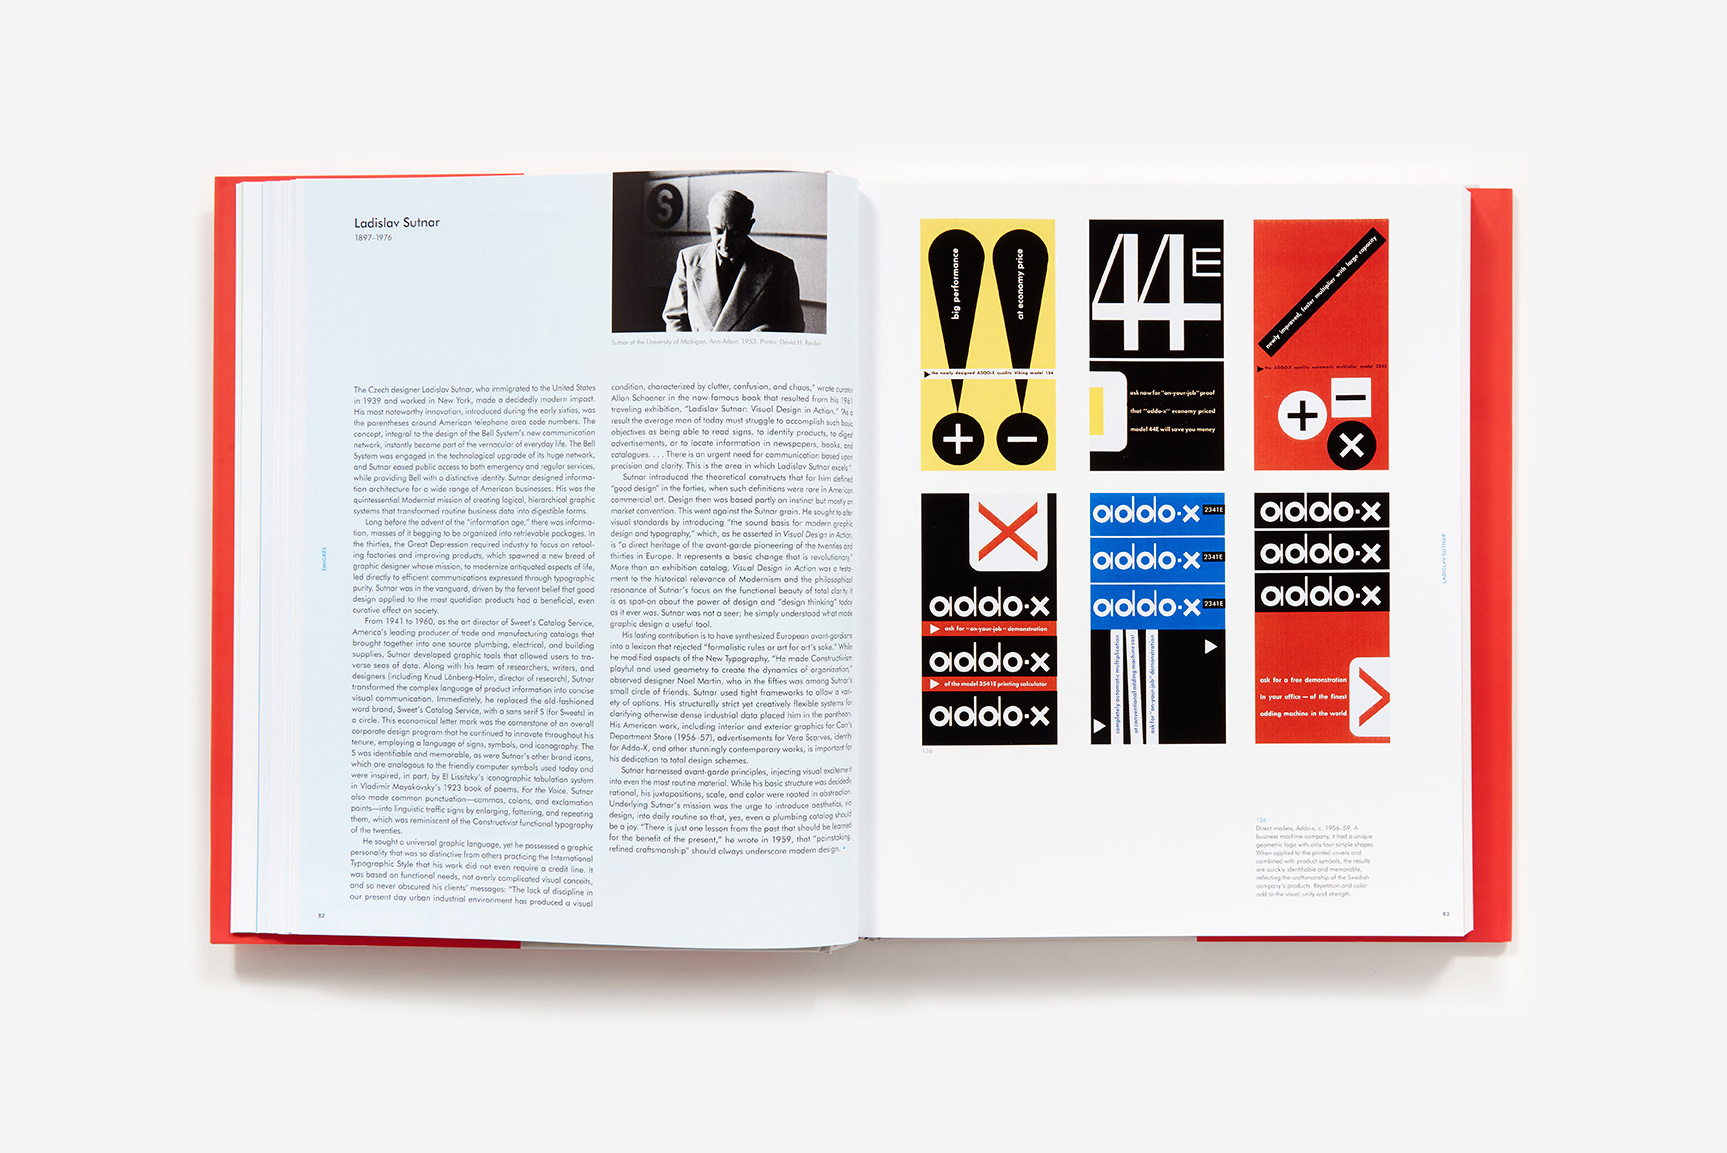 The Moderns, Steven Heller, Greg D'Onofrio